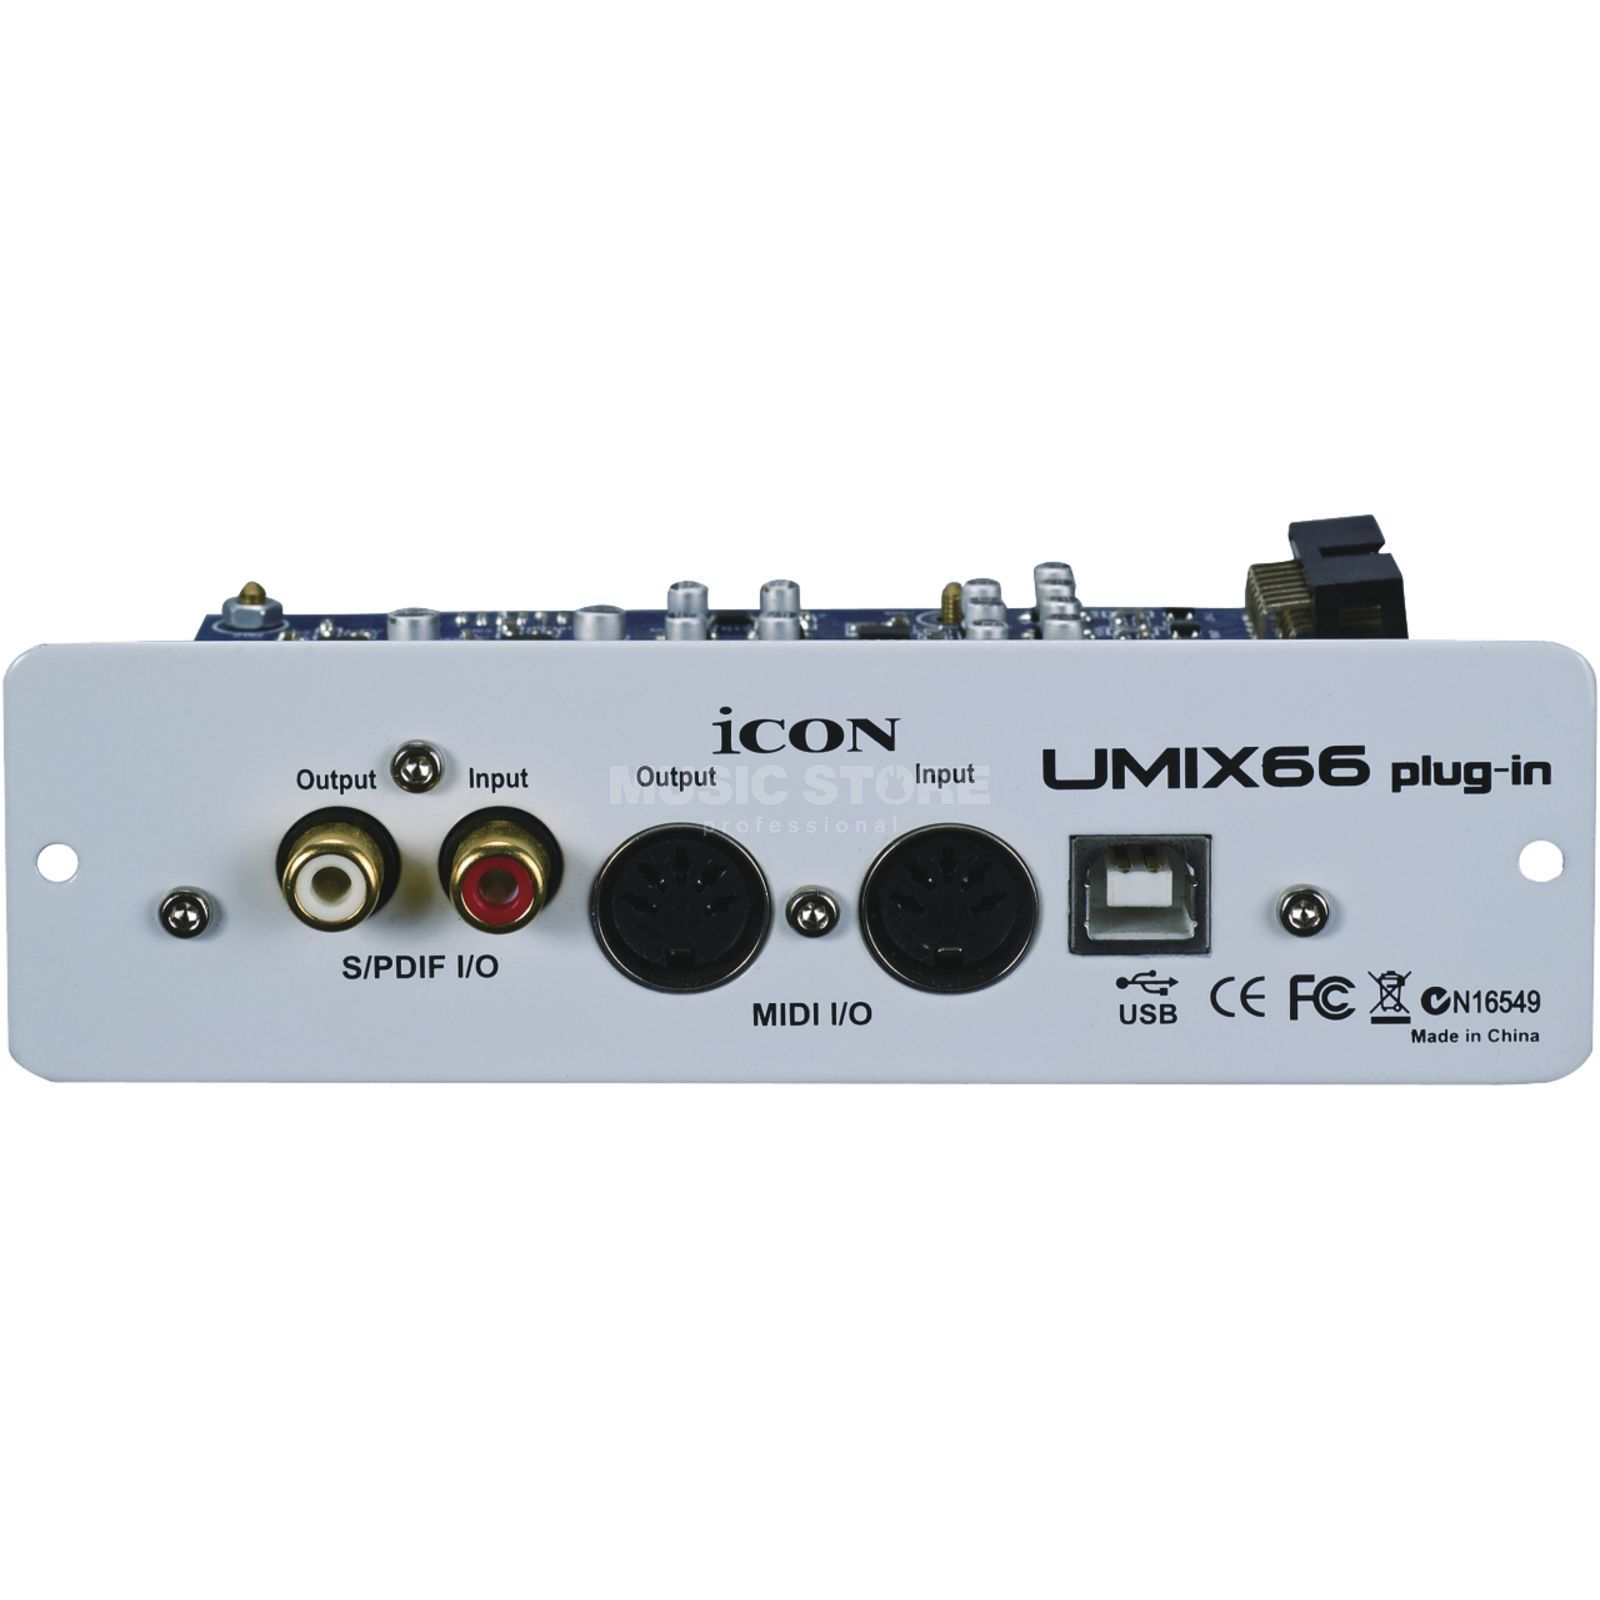 iCON Umix66 USB Expansion Card 6In/6Out + MIDI für Umix Mixer Imagem do produto